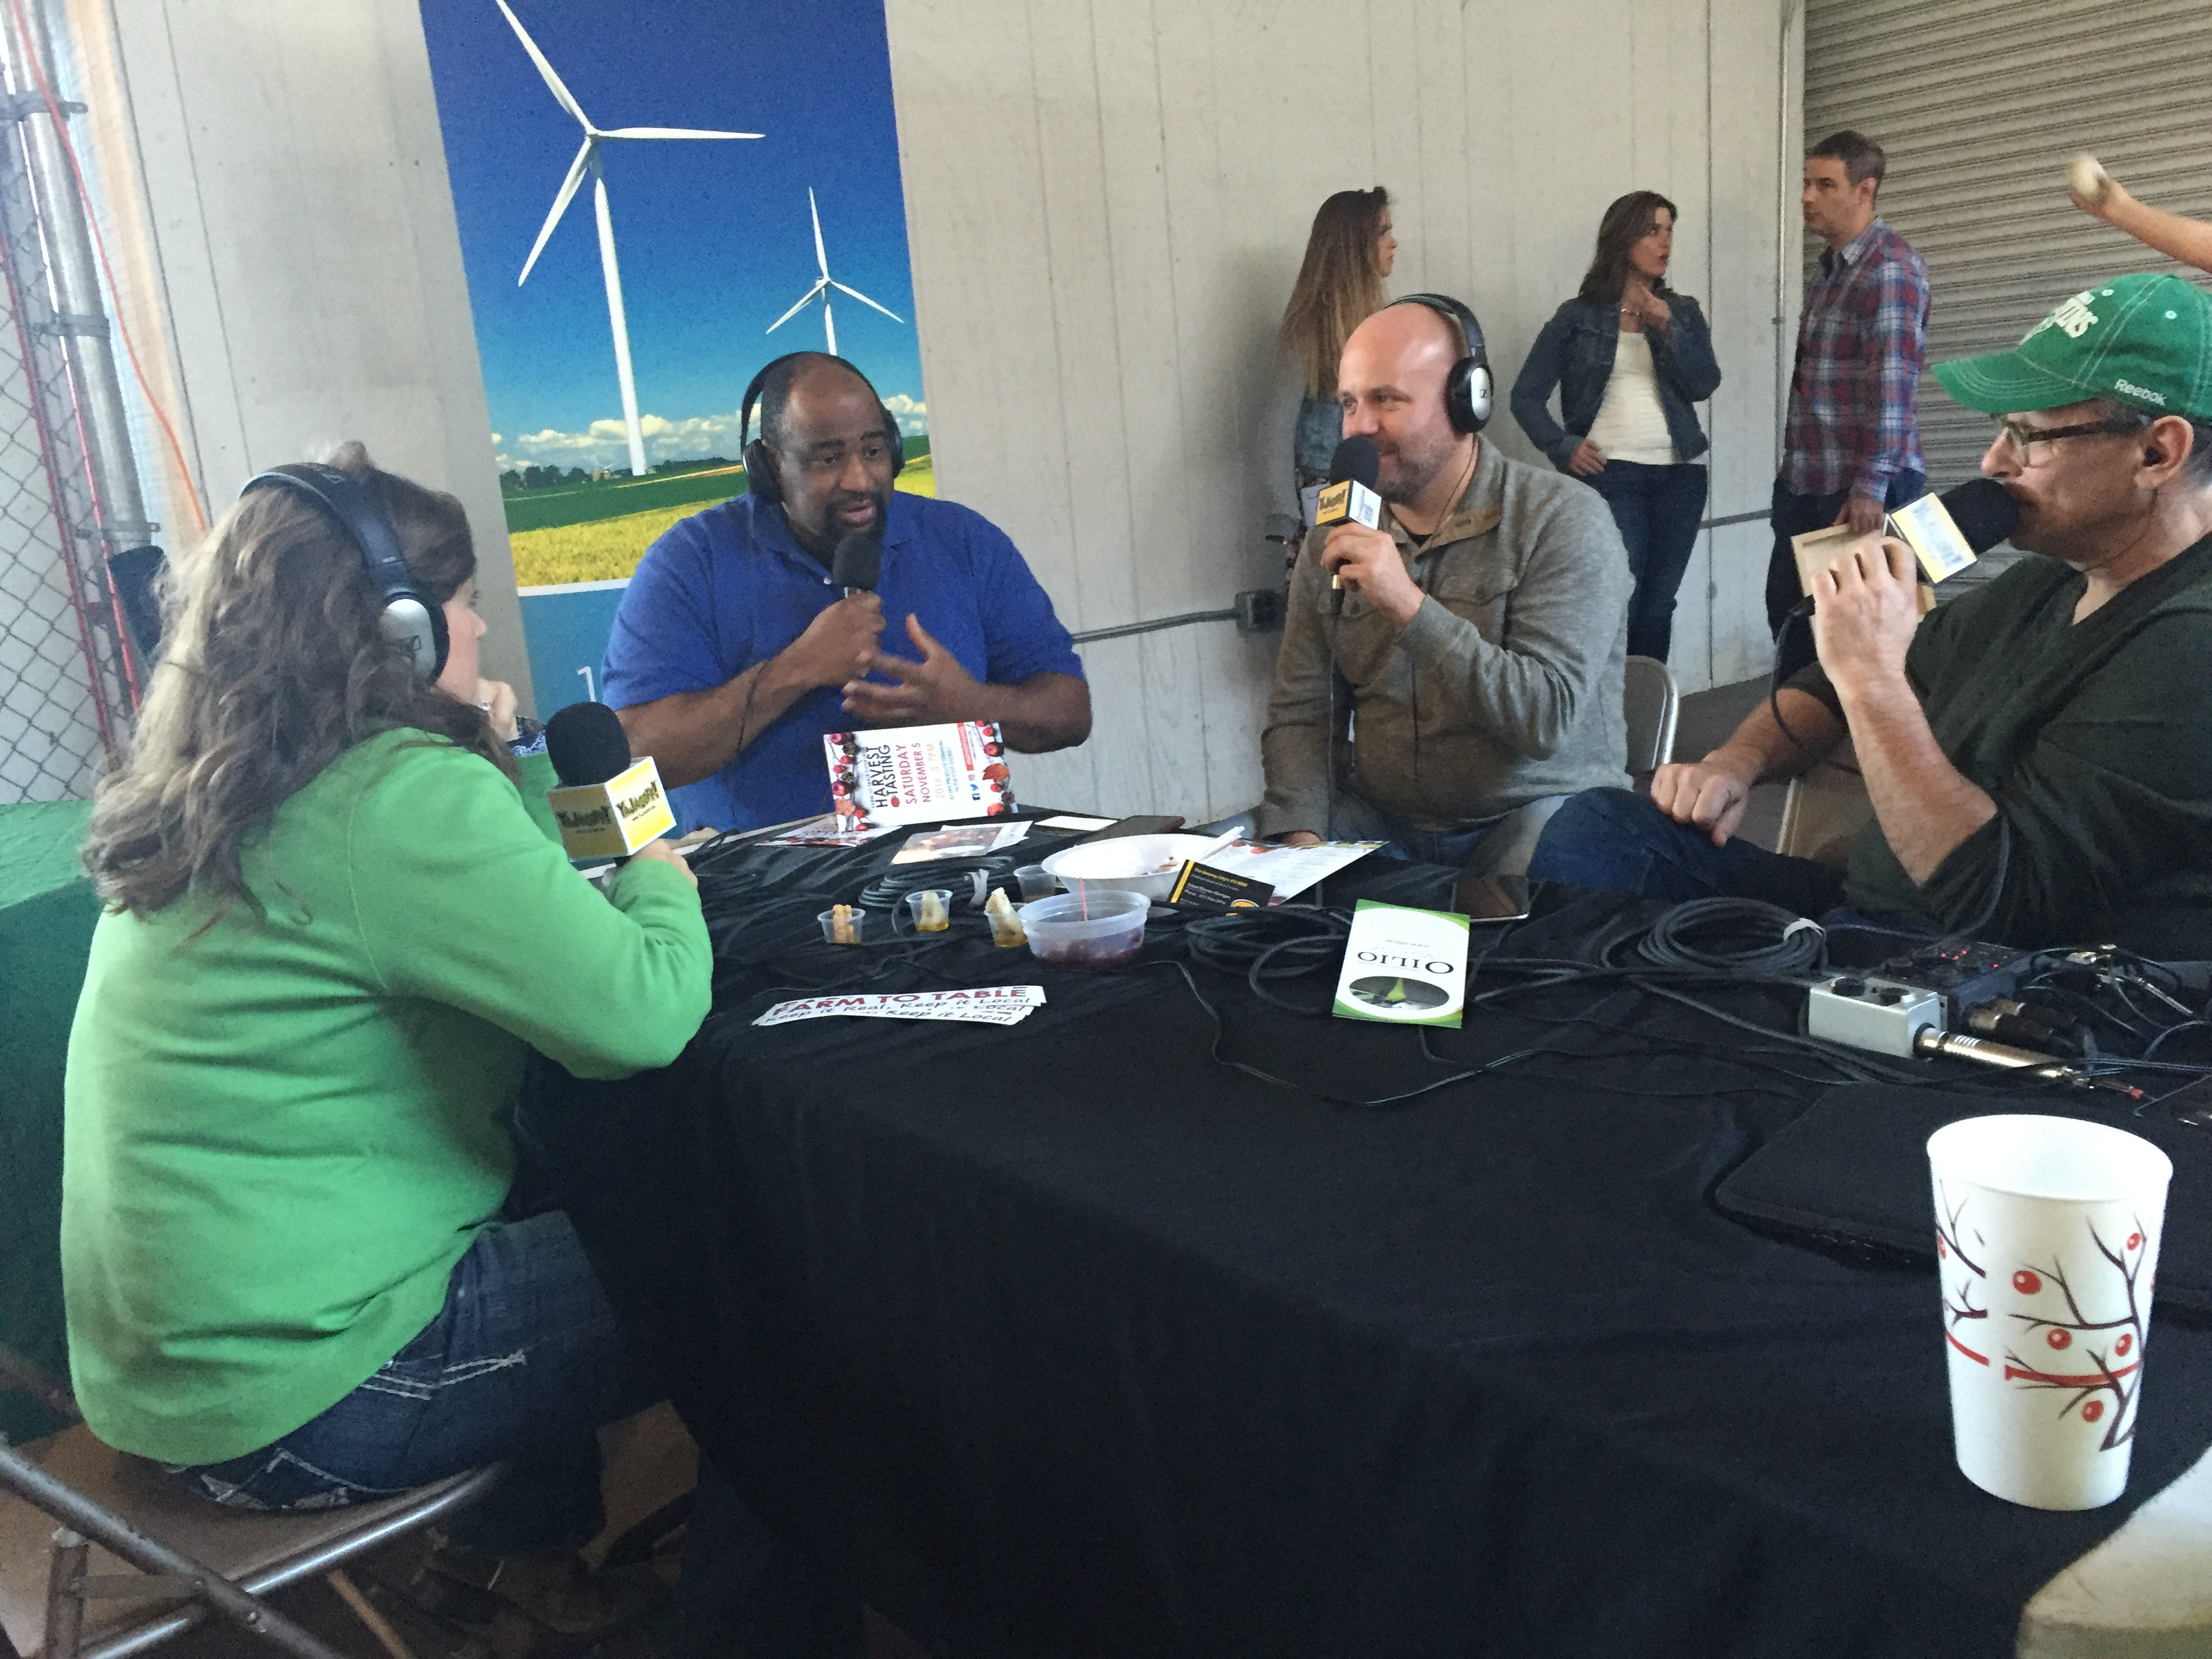 YaJagoff Podcast at Farm to Table